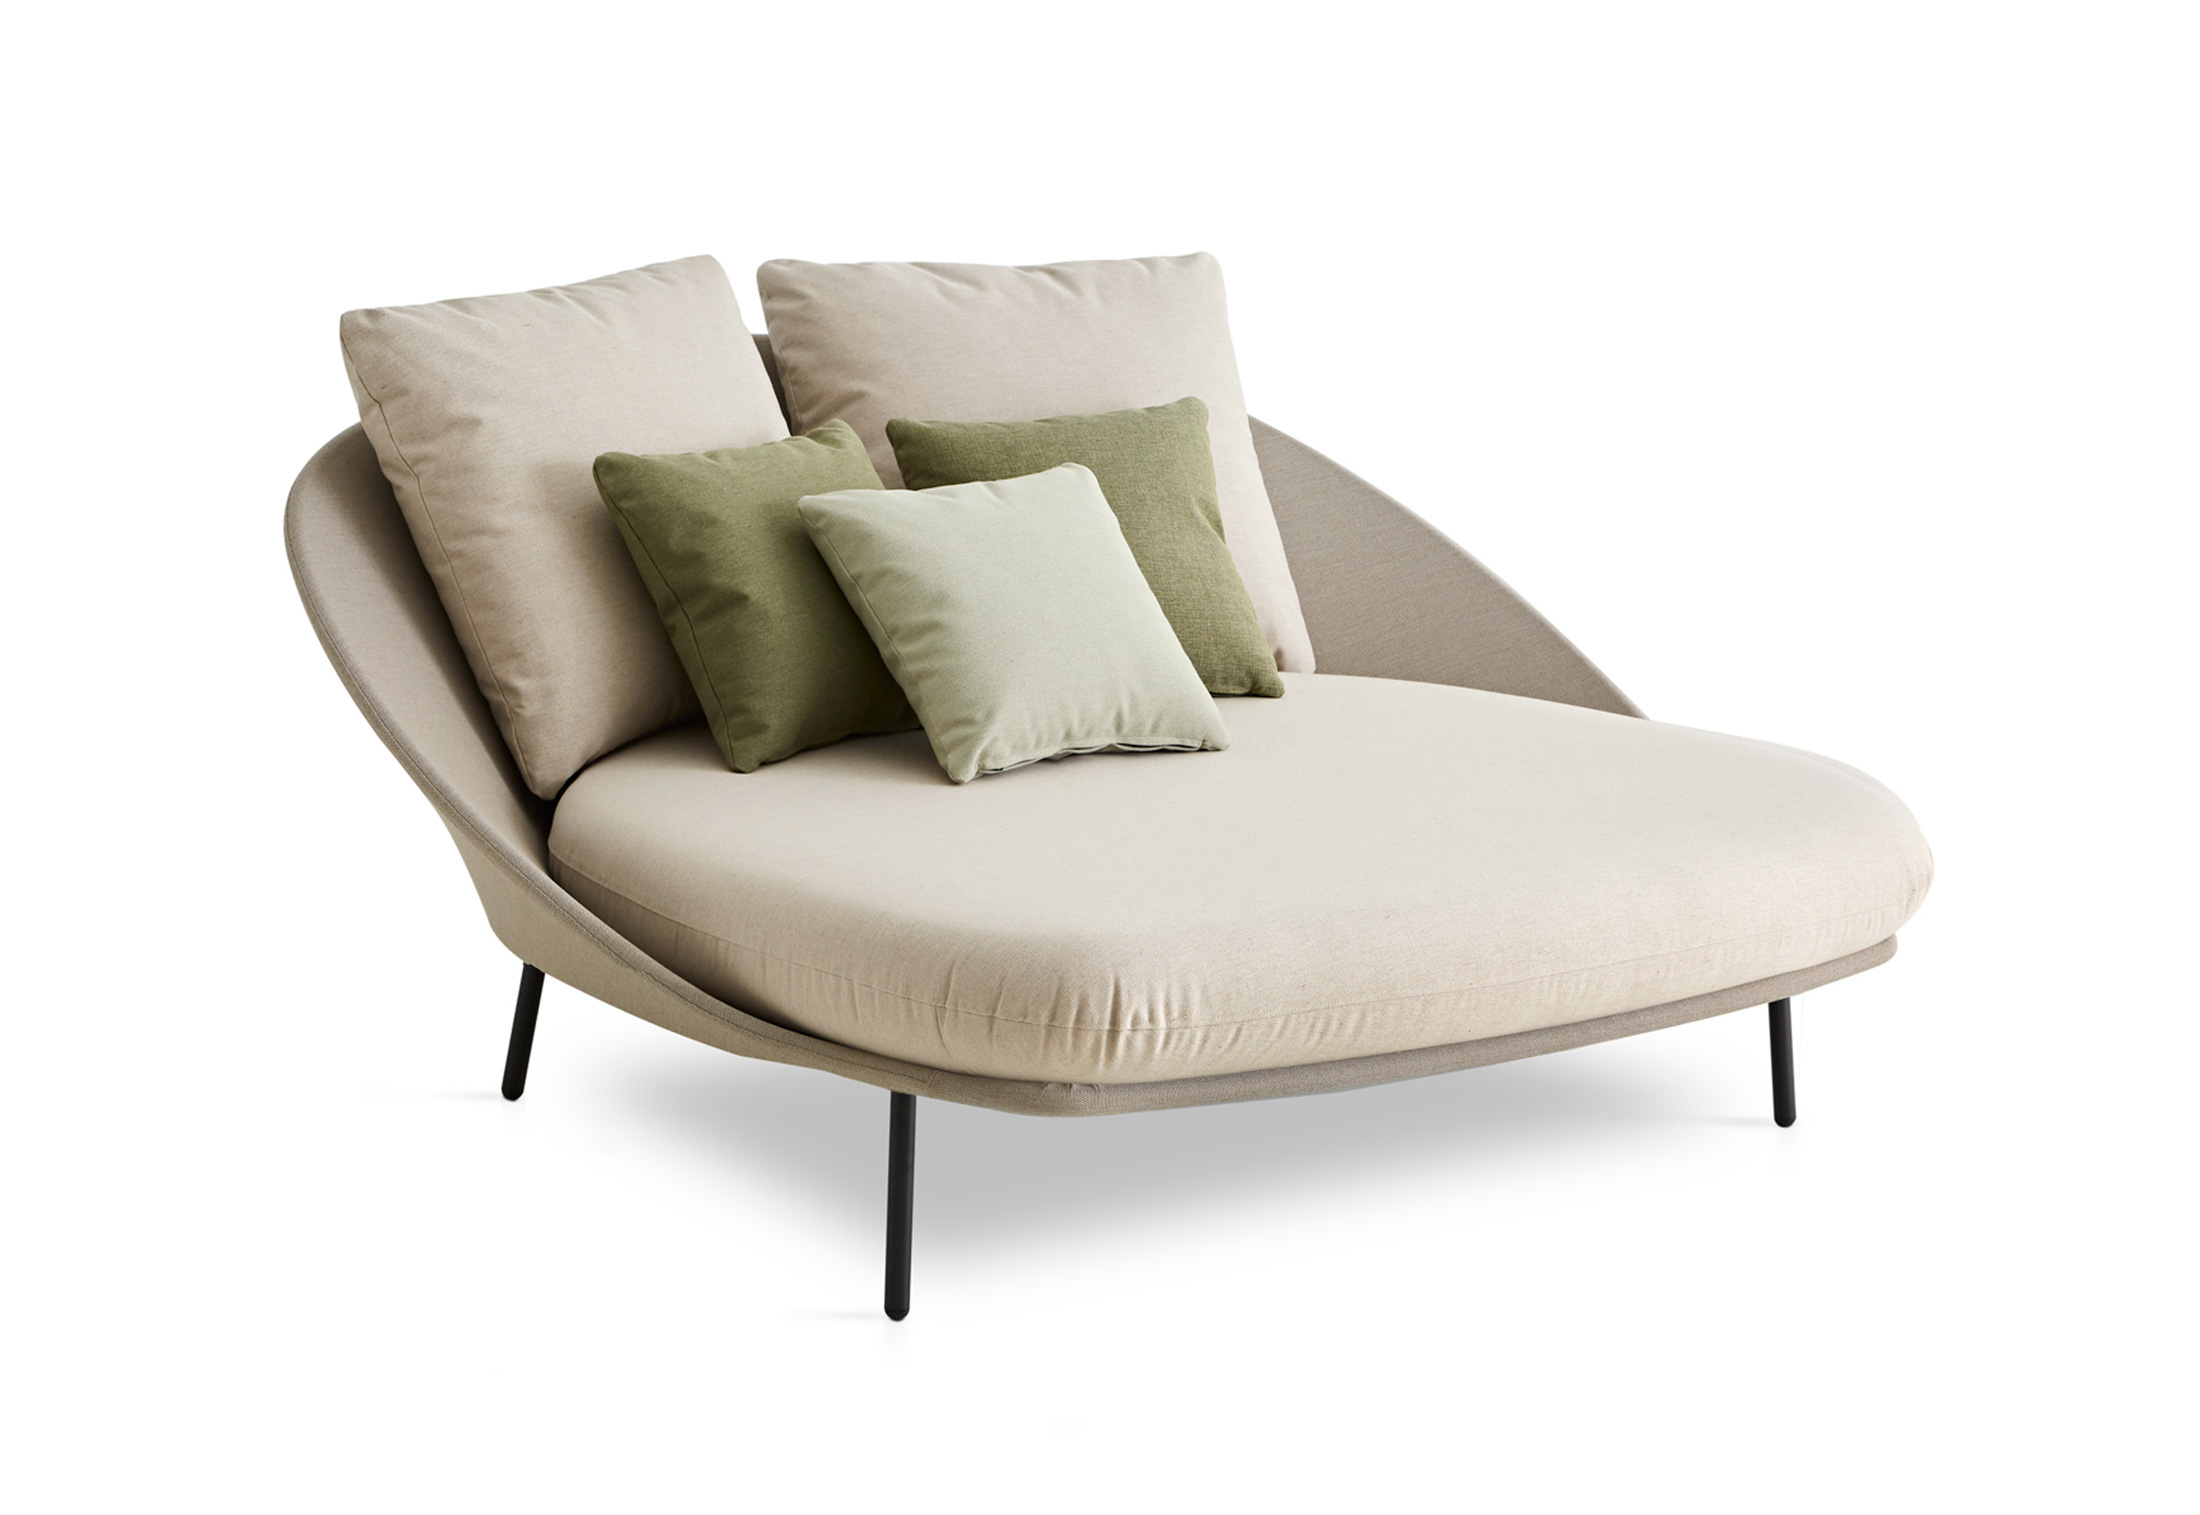 twins double chaise longue c173 by